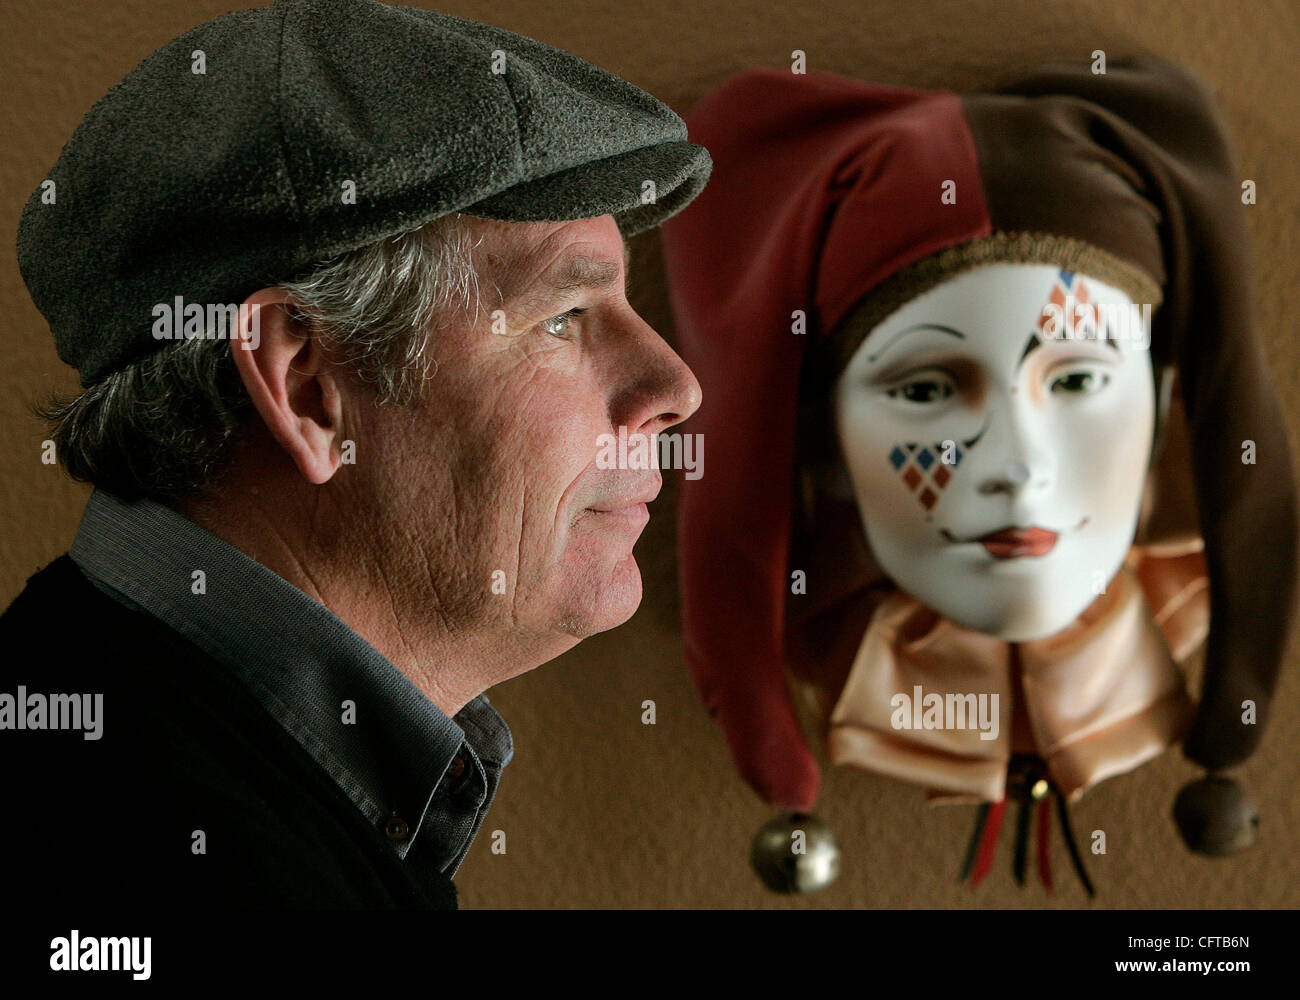 December 28, 2006, San Diego, California, USA_USA_JERRY HAGER for years has been the mime character 'Kazoo' - Stock Image